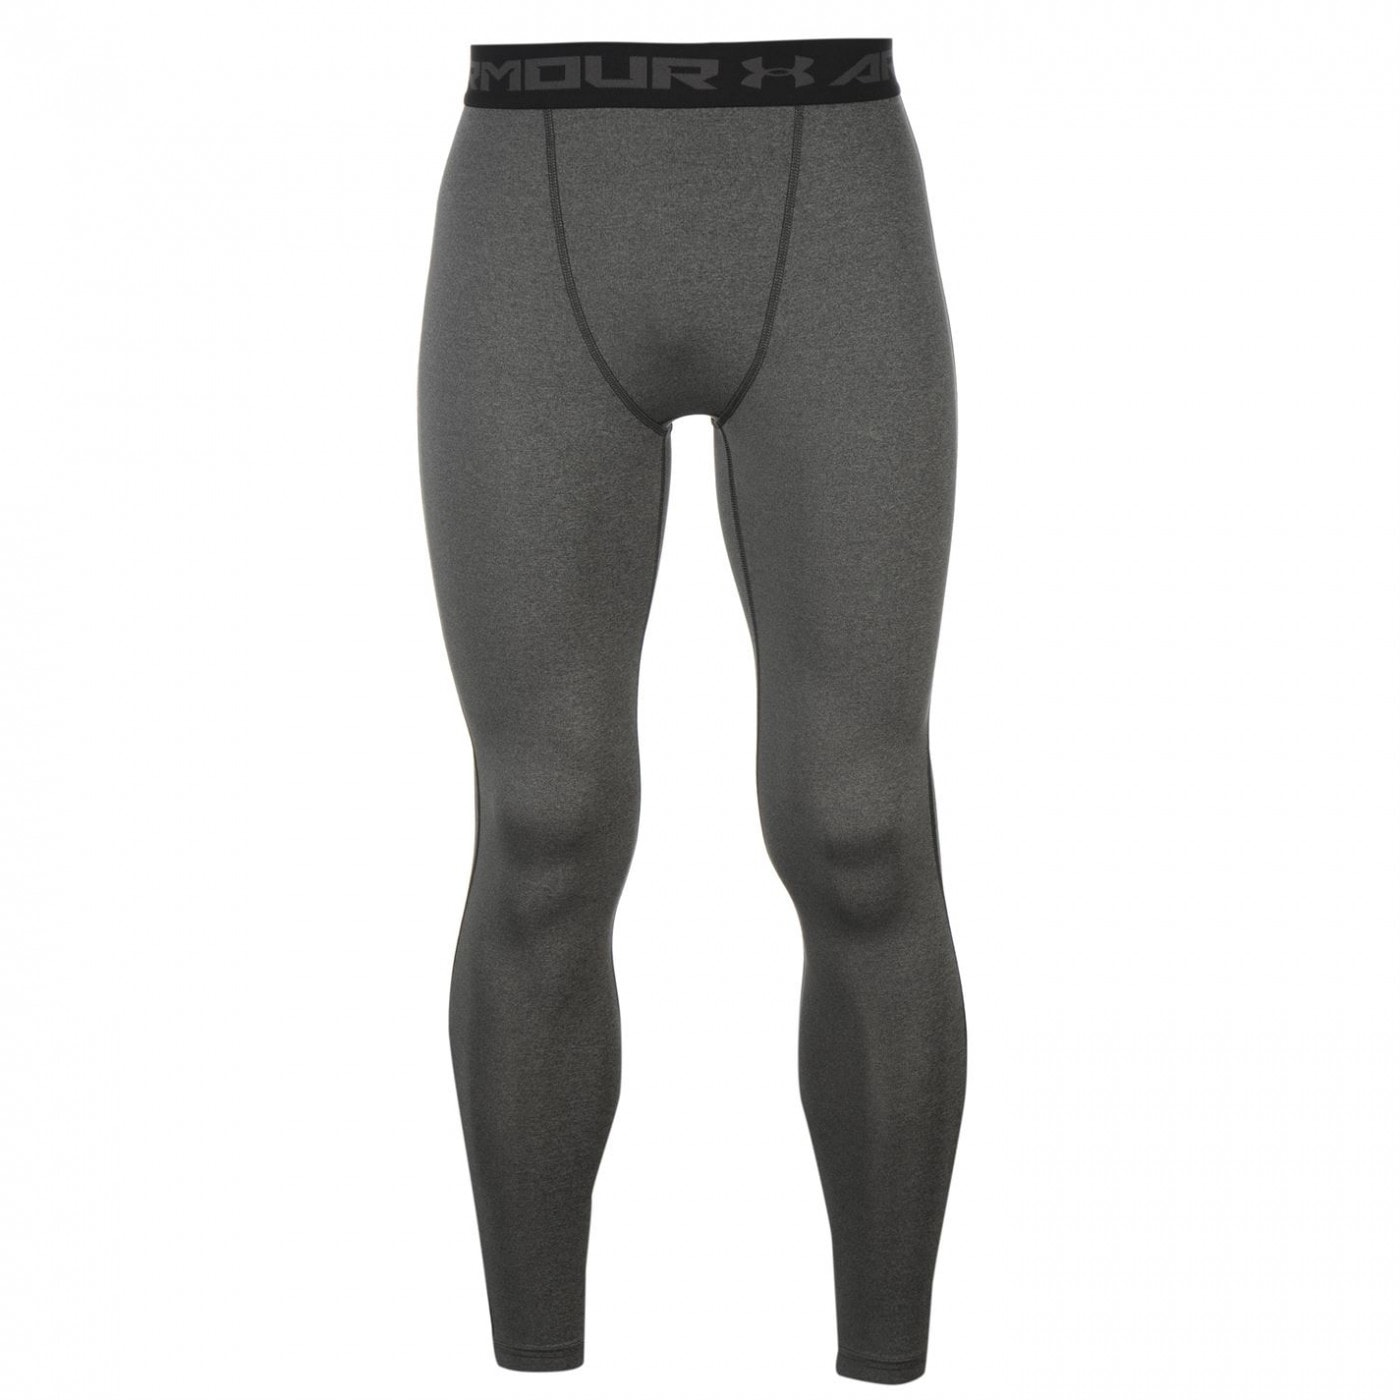 940561c186 Under Armour HeatGear Armour Baselayer Tights Mens - FACTCOOL